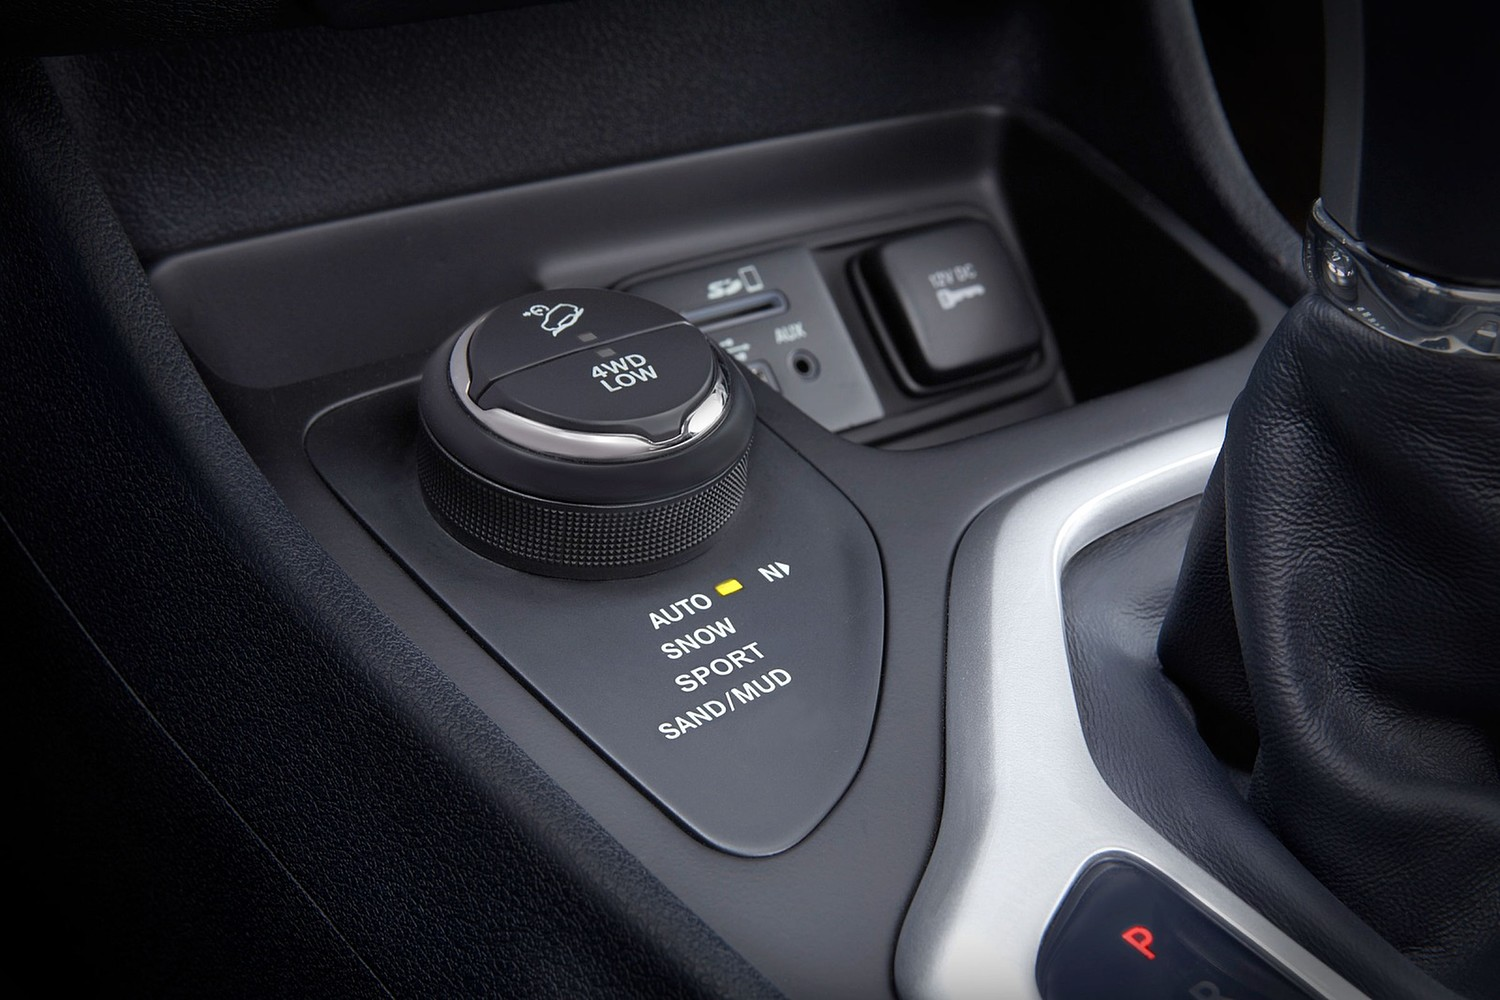 Jeep Cherokee Limited 4dr SUV Interior Detail (2015 model year shown)